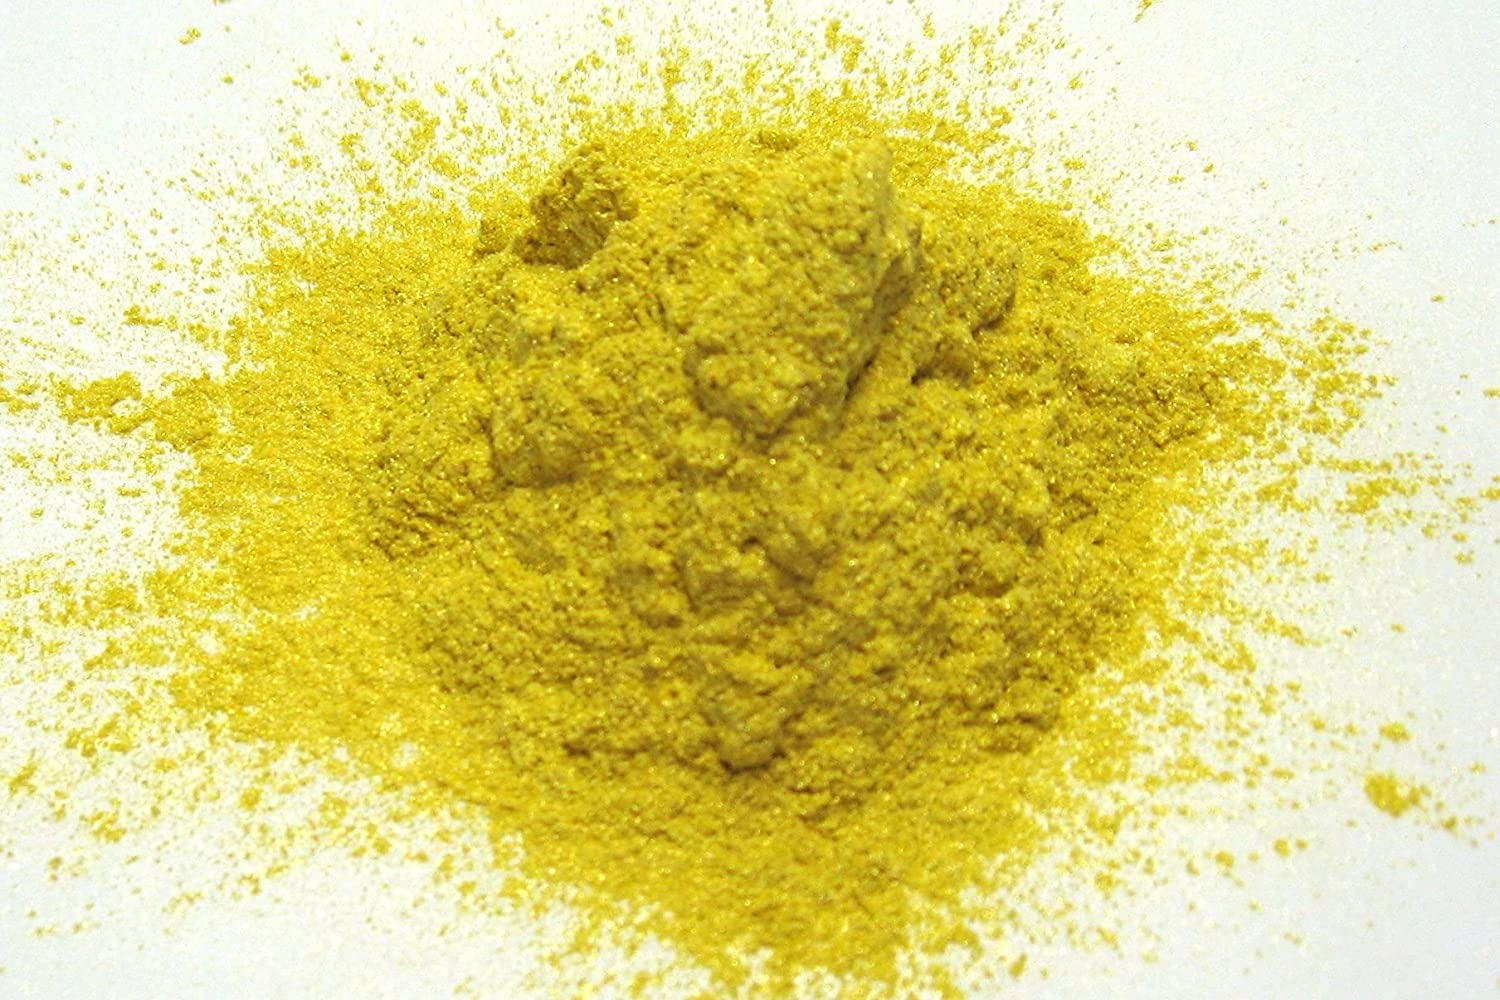 Magic Yellow Mica Powder15 grams, Metallic Yellow Pearl Powder, Cosmetic Mica Powder for Lipsticks, Lip Balm, Bath bombs and More, Slice of the Moon EKS Entertainment Group